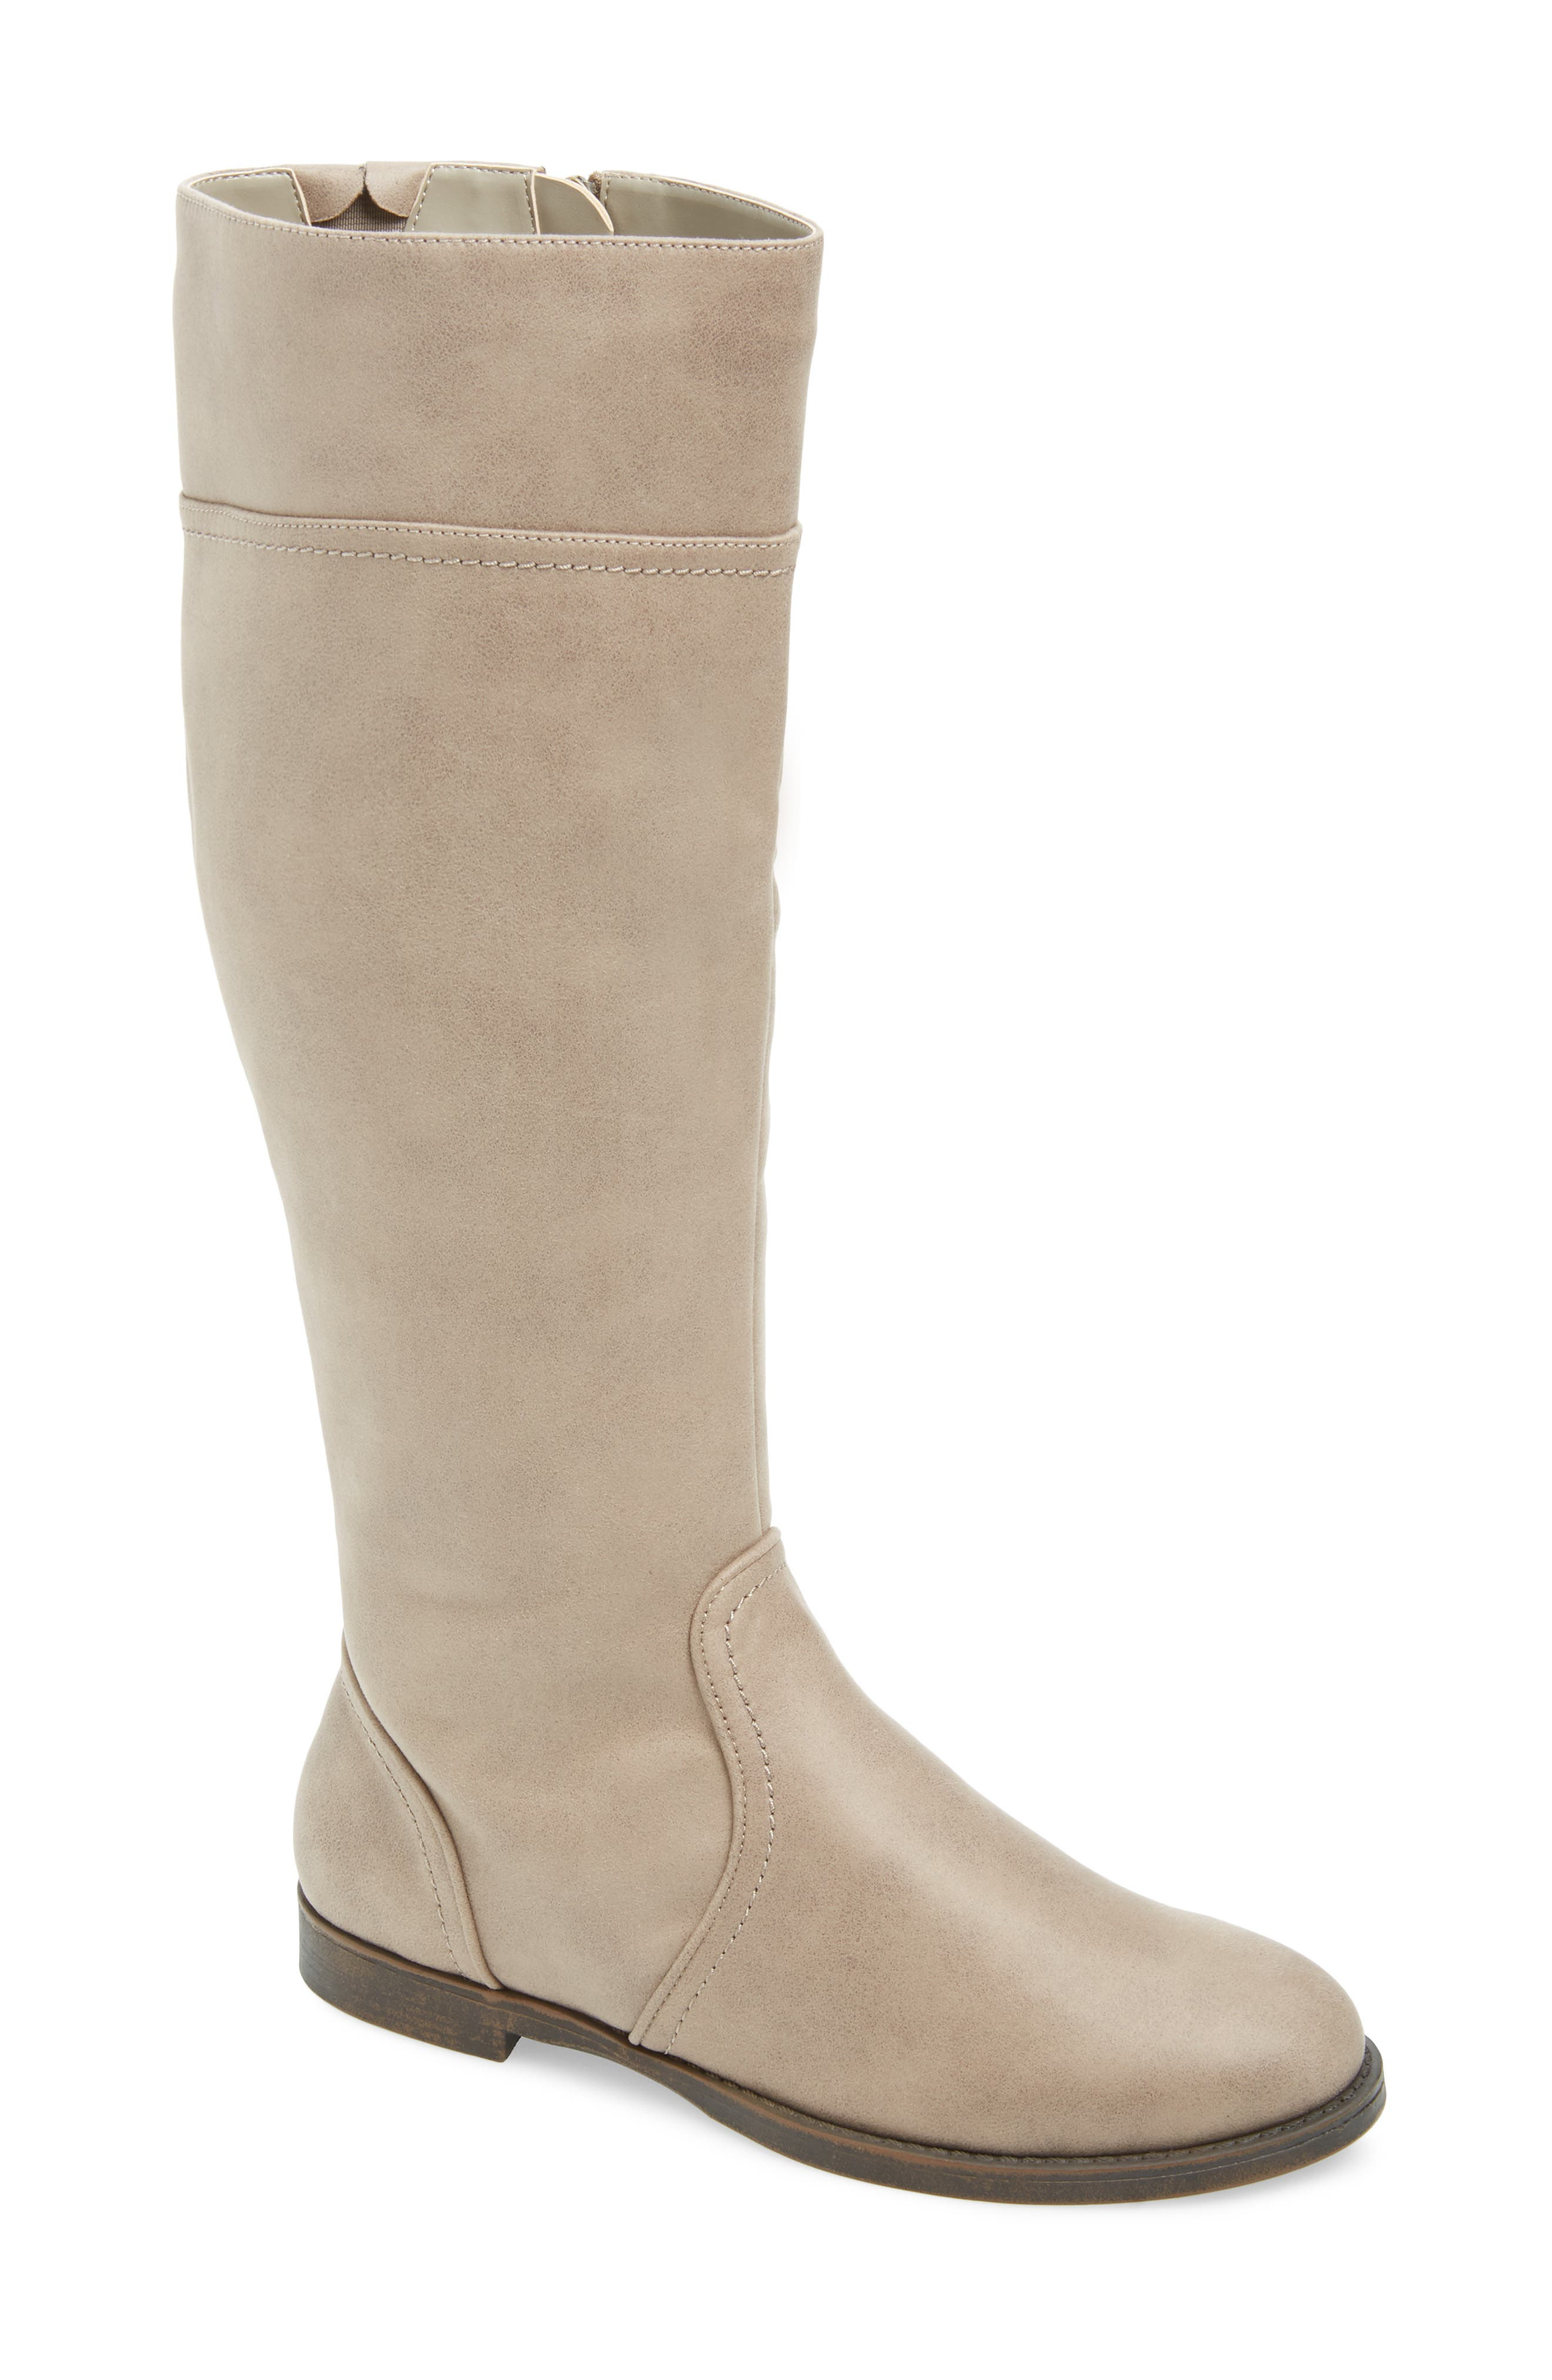 Bella Vita Rebecca Ii Knee High Boot, Beige